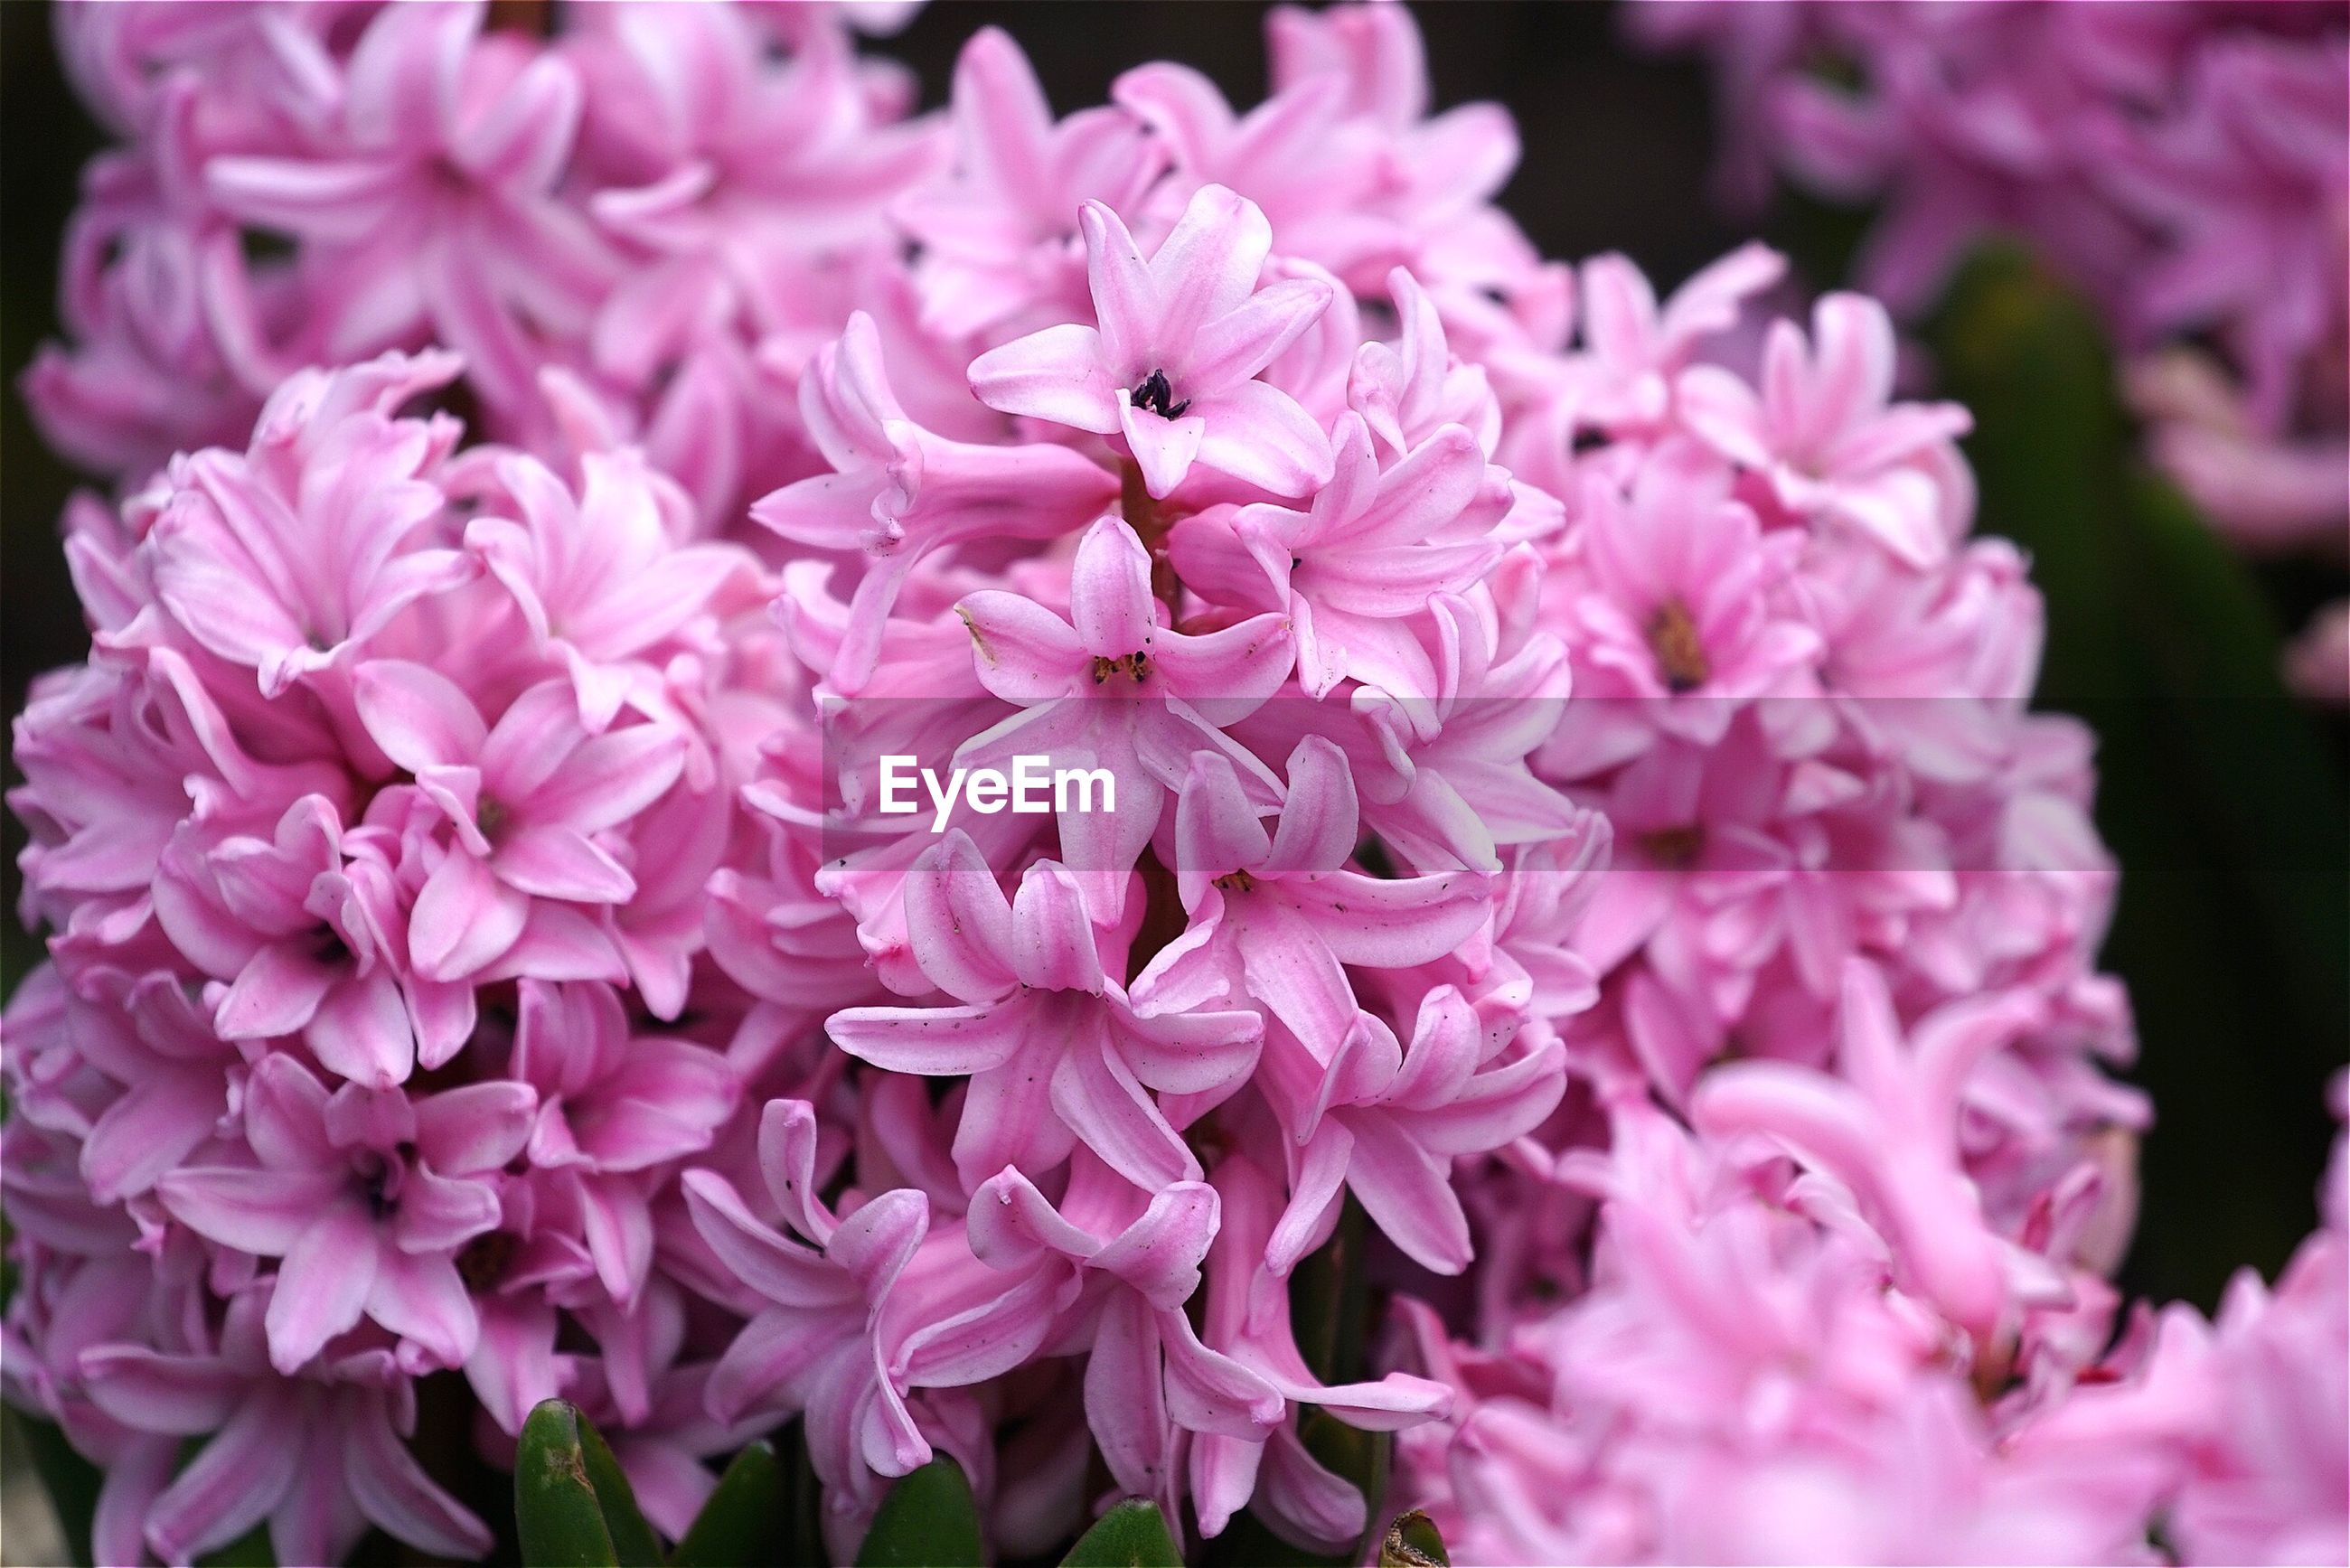 Close-up of pink hyacinths blooming outdoors